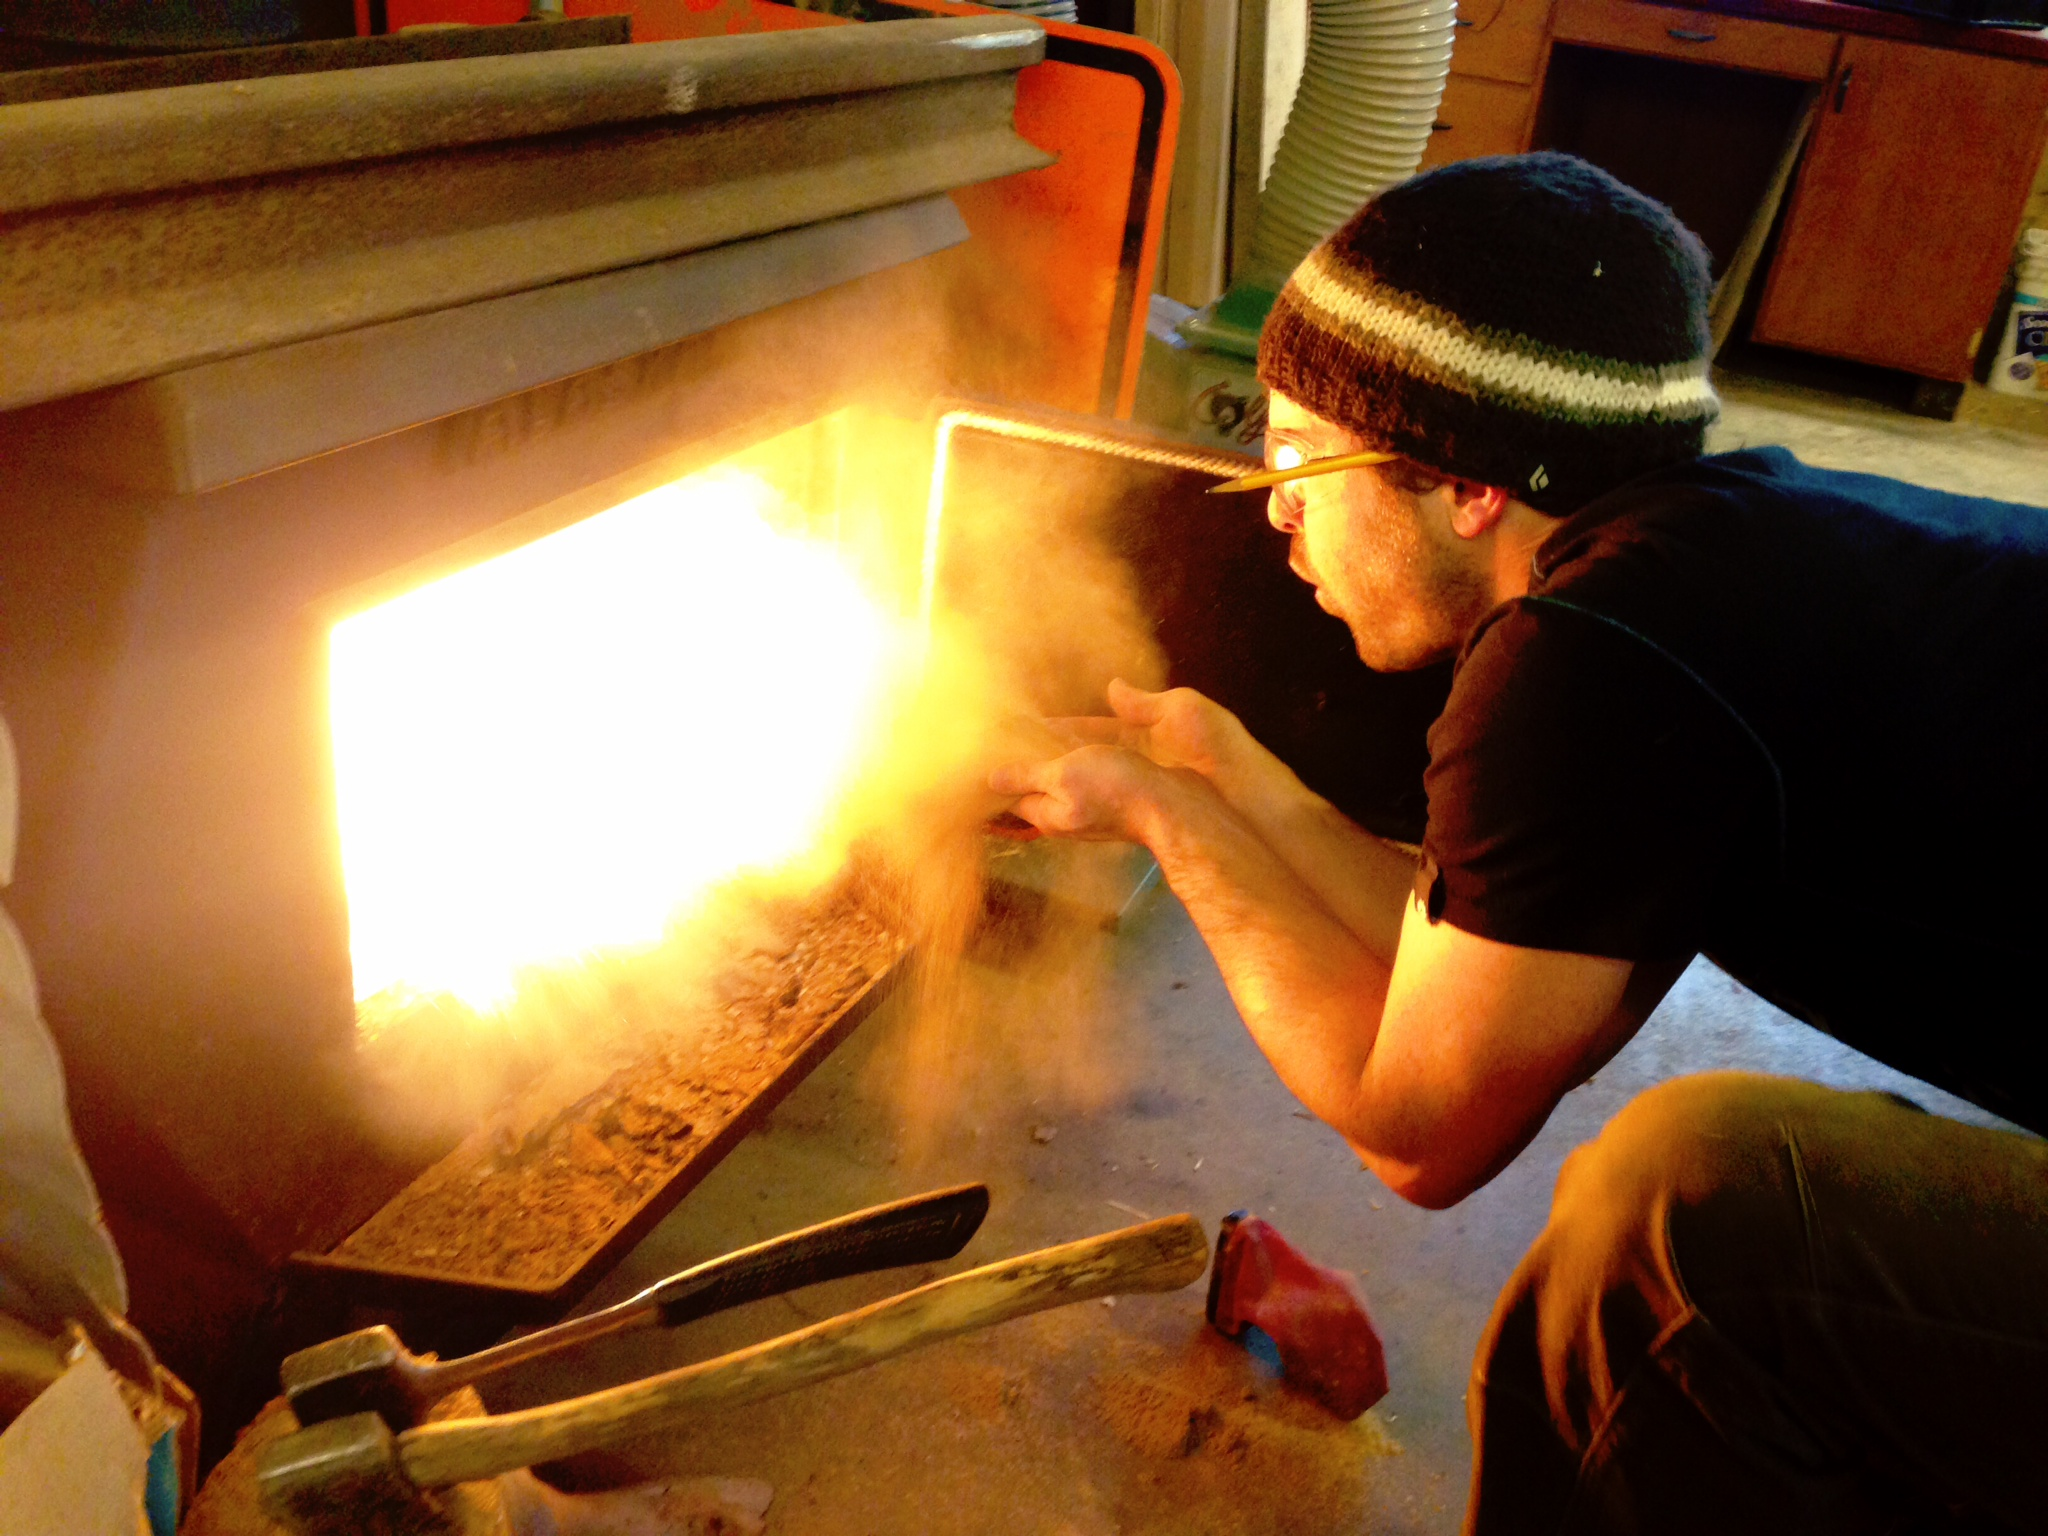 Fueling the woodshop fire with a blast of fine sawdust.